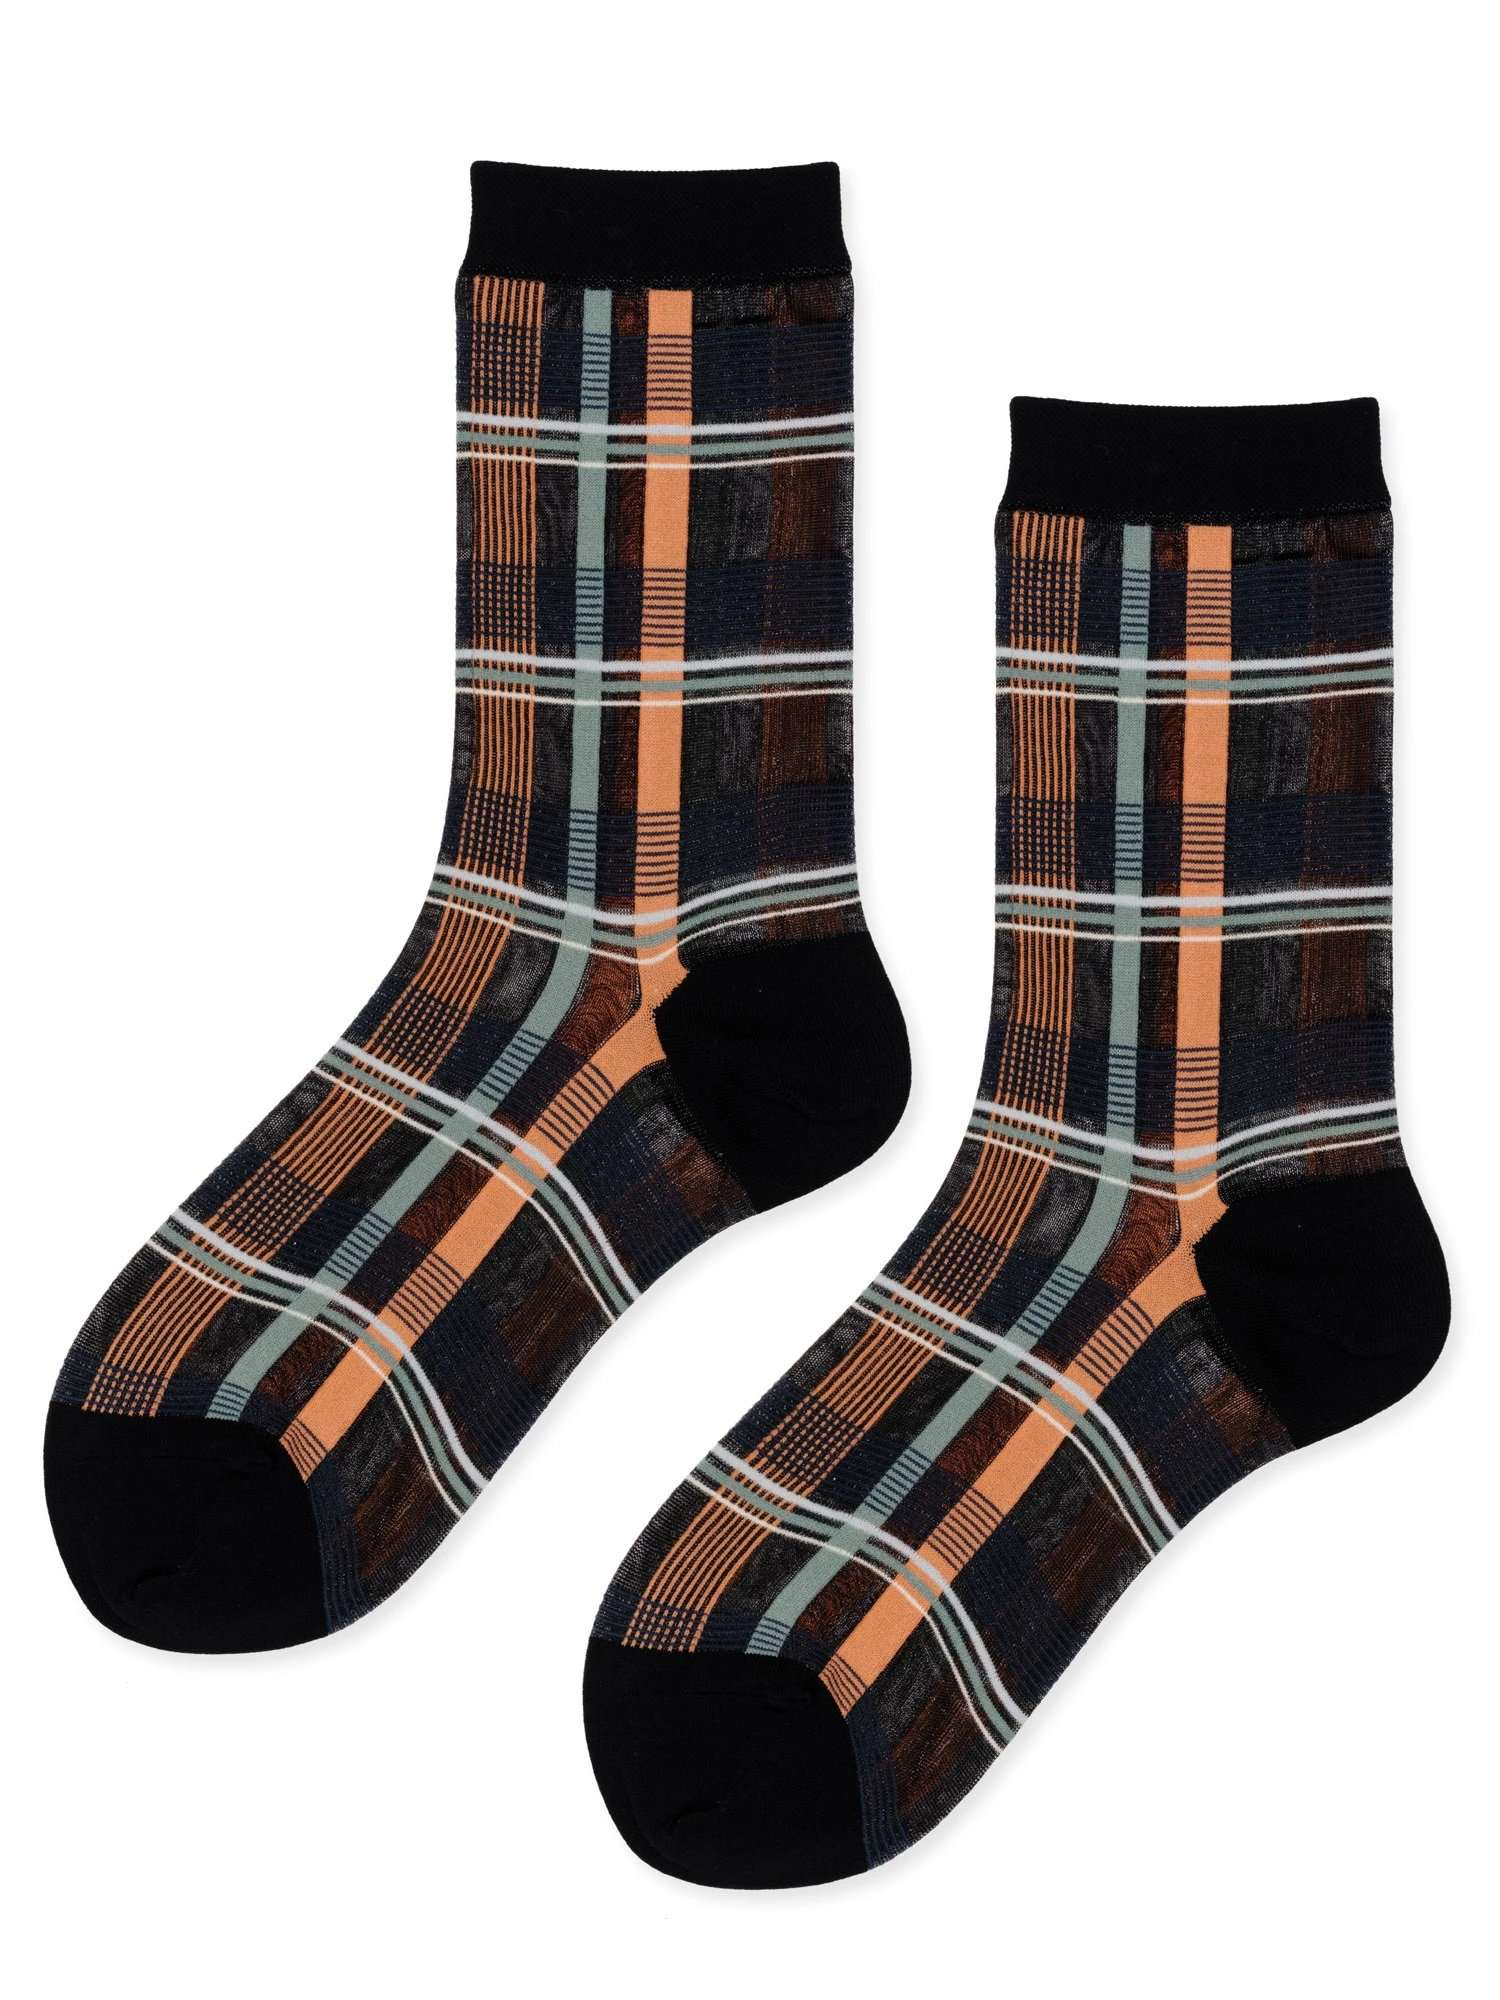 The Plaid Sheer Sock in Black